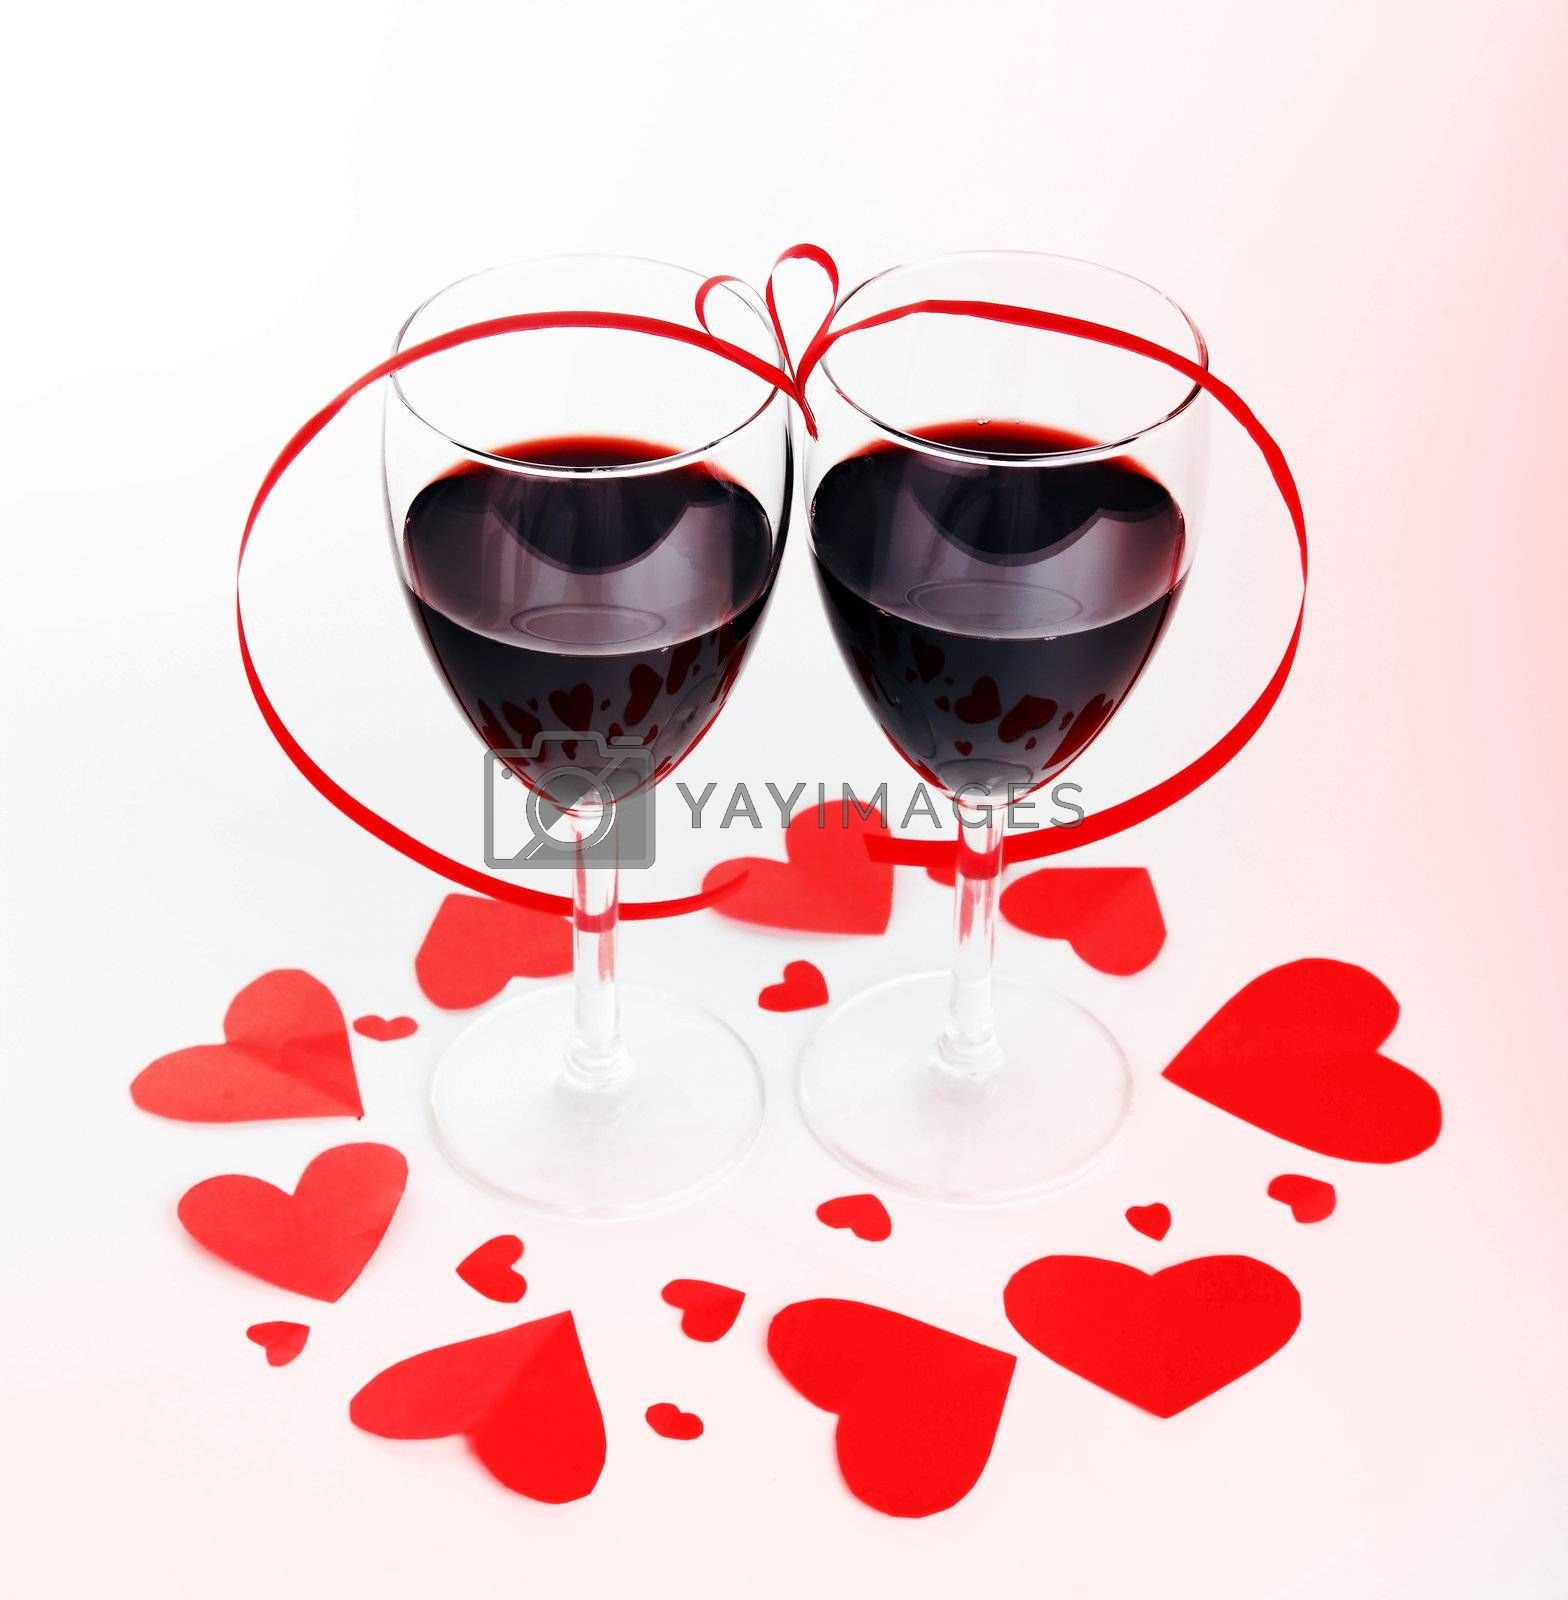 Romantic holiday drink, celebration of valentine's day, red wine with hearts ornament & ribbon decoration, isolated on white background